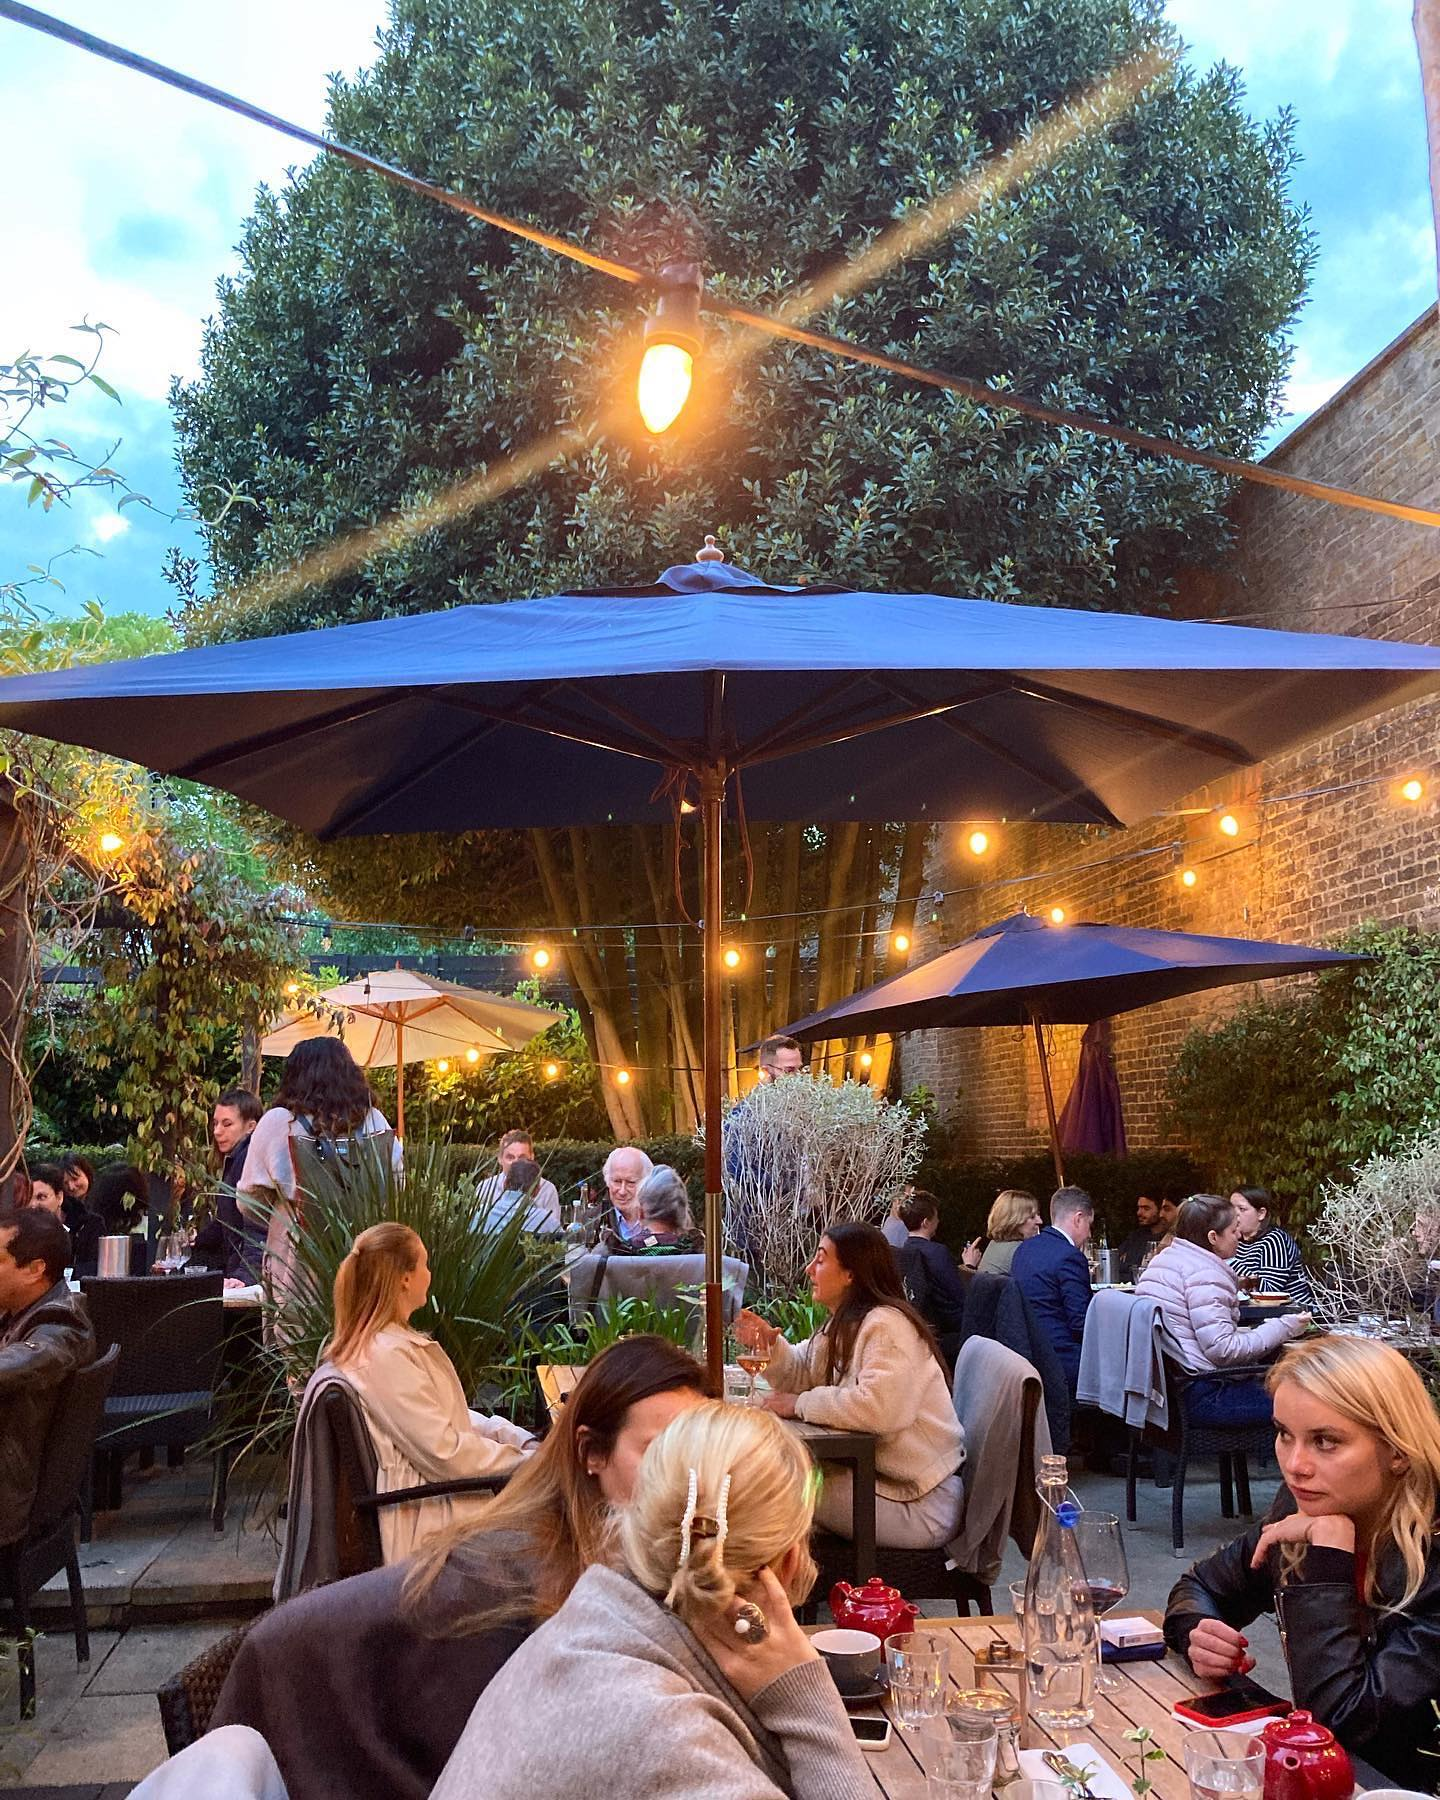 The first summer evening in our garden last night was magical! Thank you to everyone who joined us!   We are looking forward to more...   #summerishere #gardendining #warmair #northlondon #northlondonpubs #highgate #hampstead